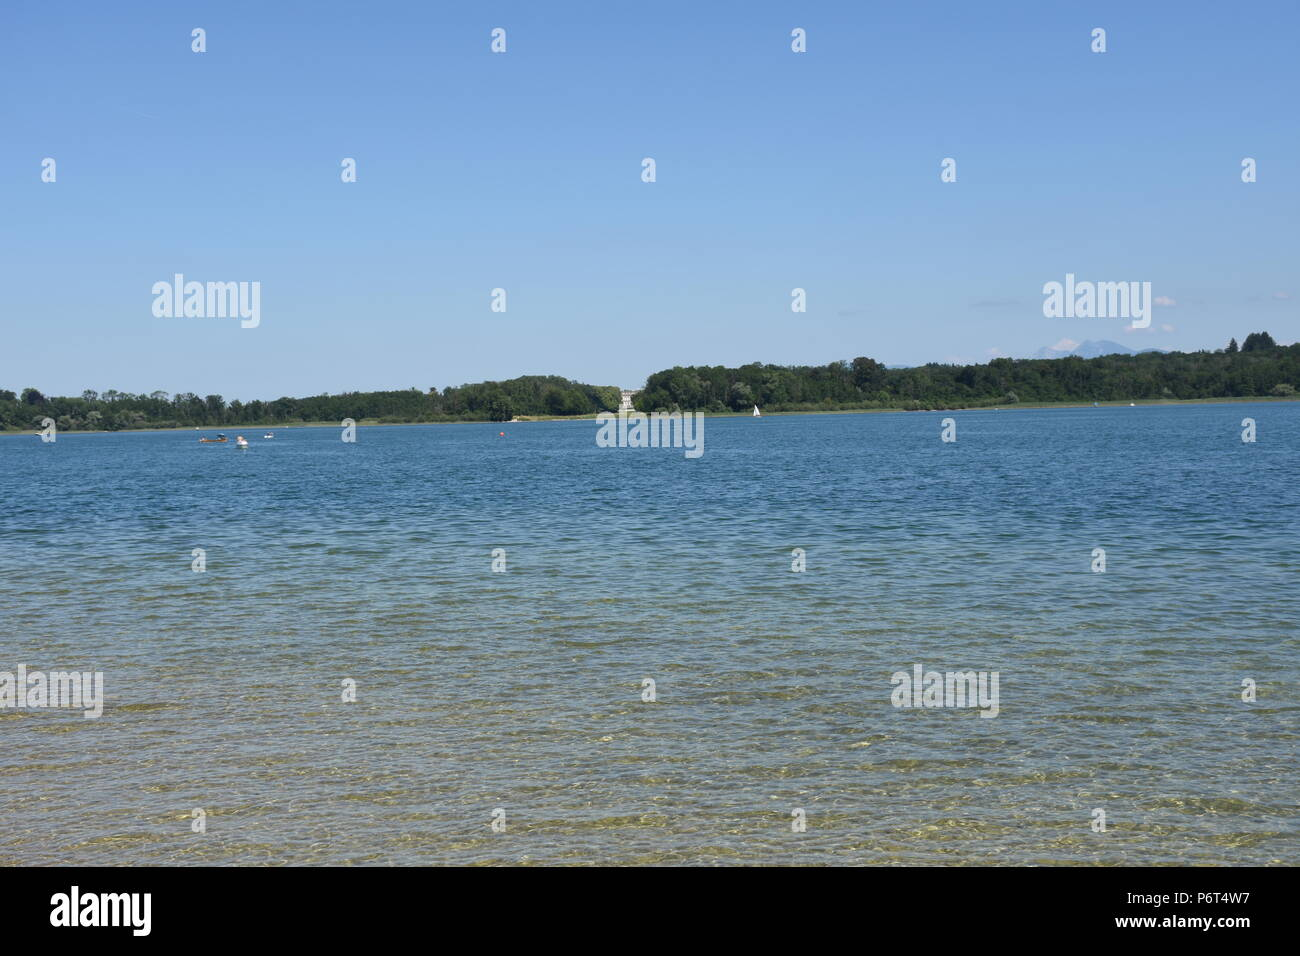 Chiemsee bei Prien in Bayern - Stock Image